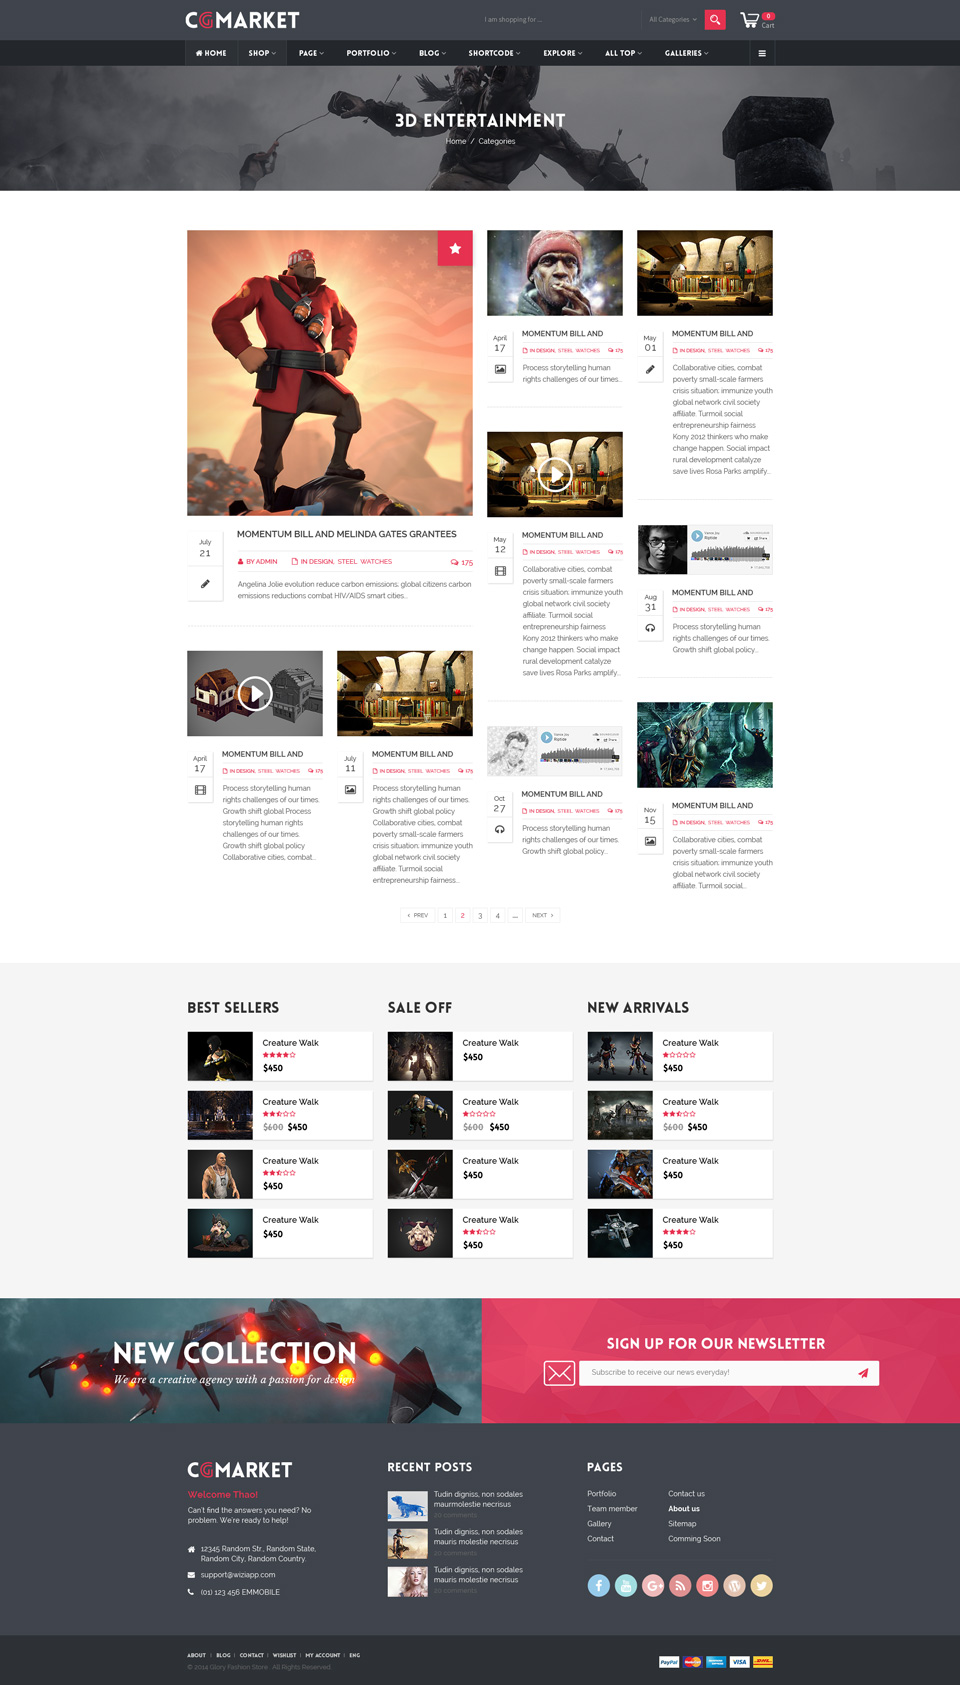 Dance CGMarket D Model Marketplace Design PSD Template By Tvlgiao - Buy ecommerce website templates